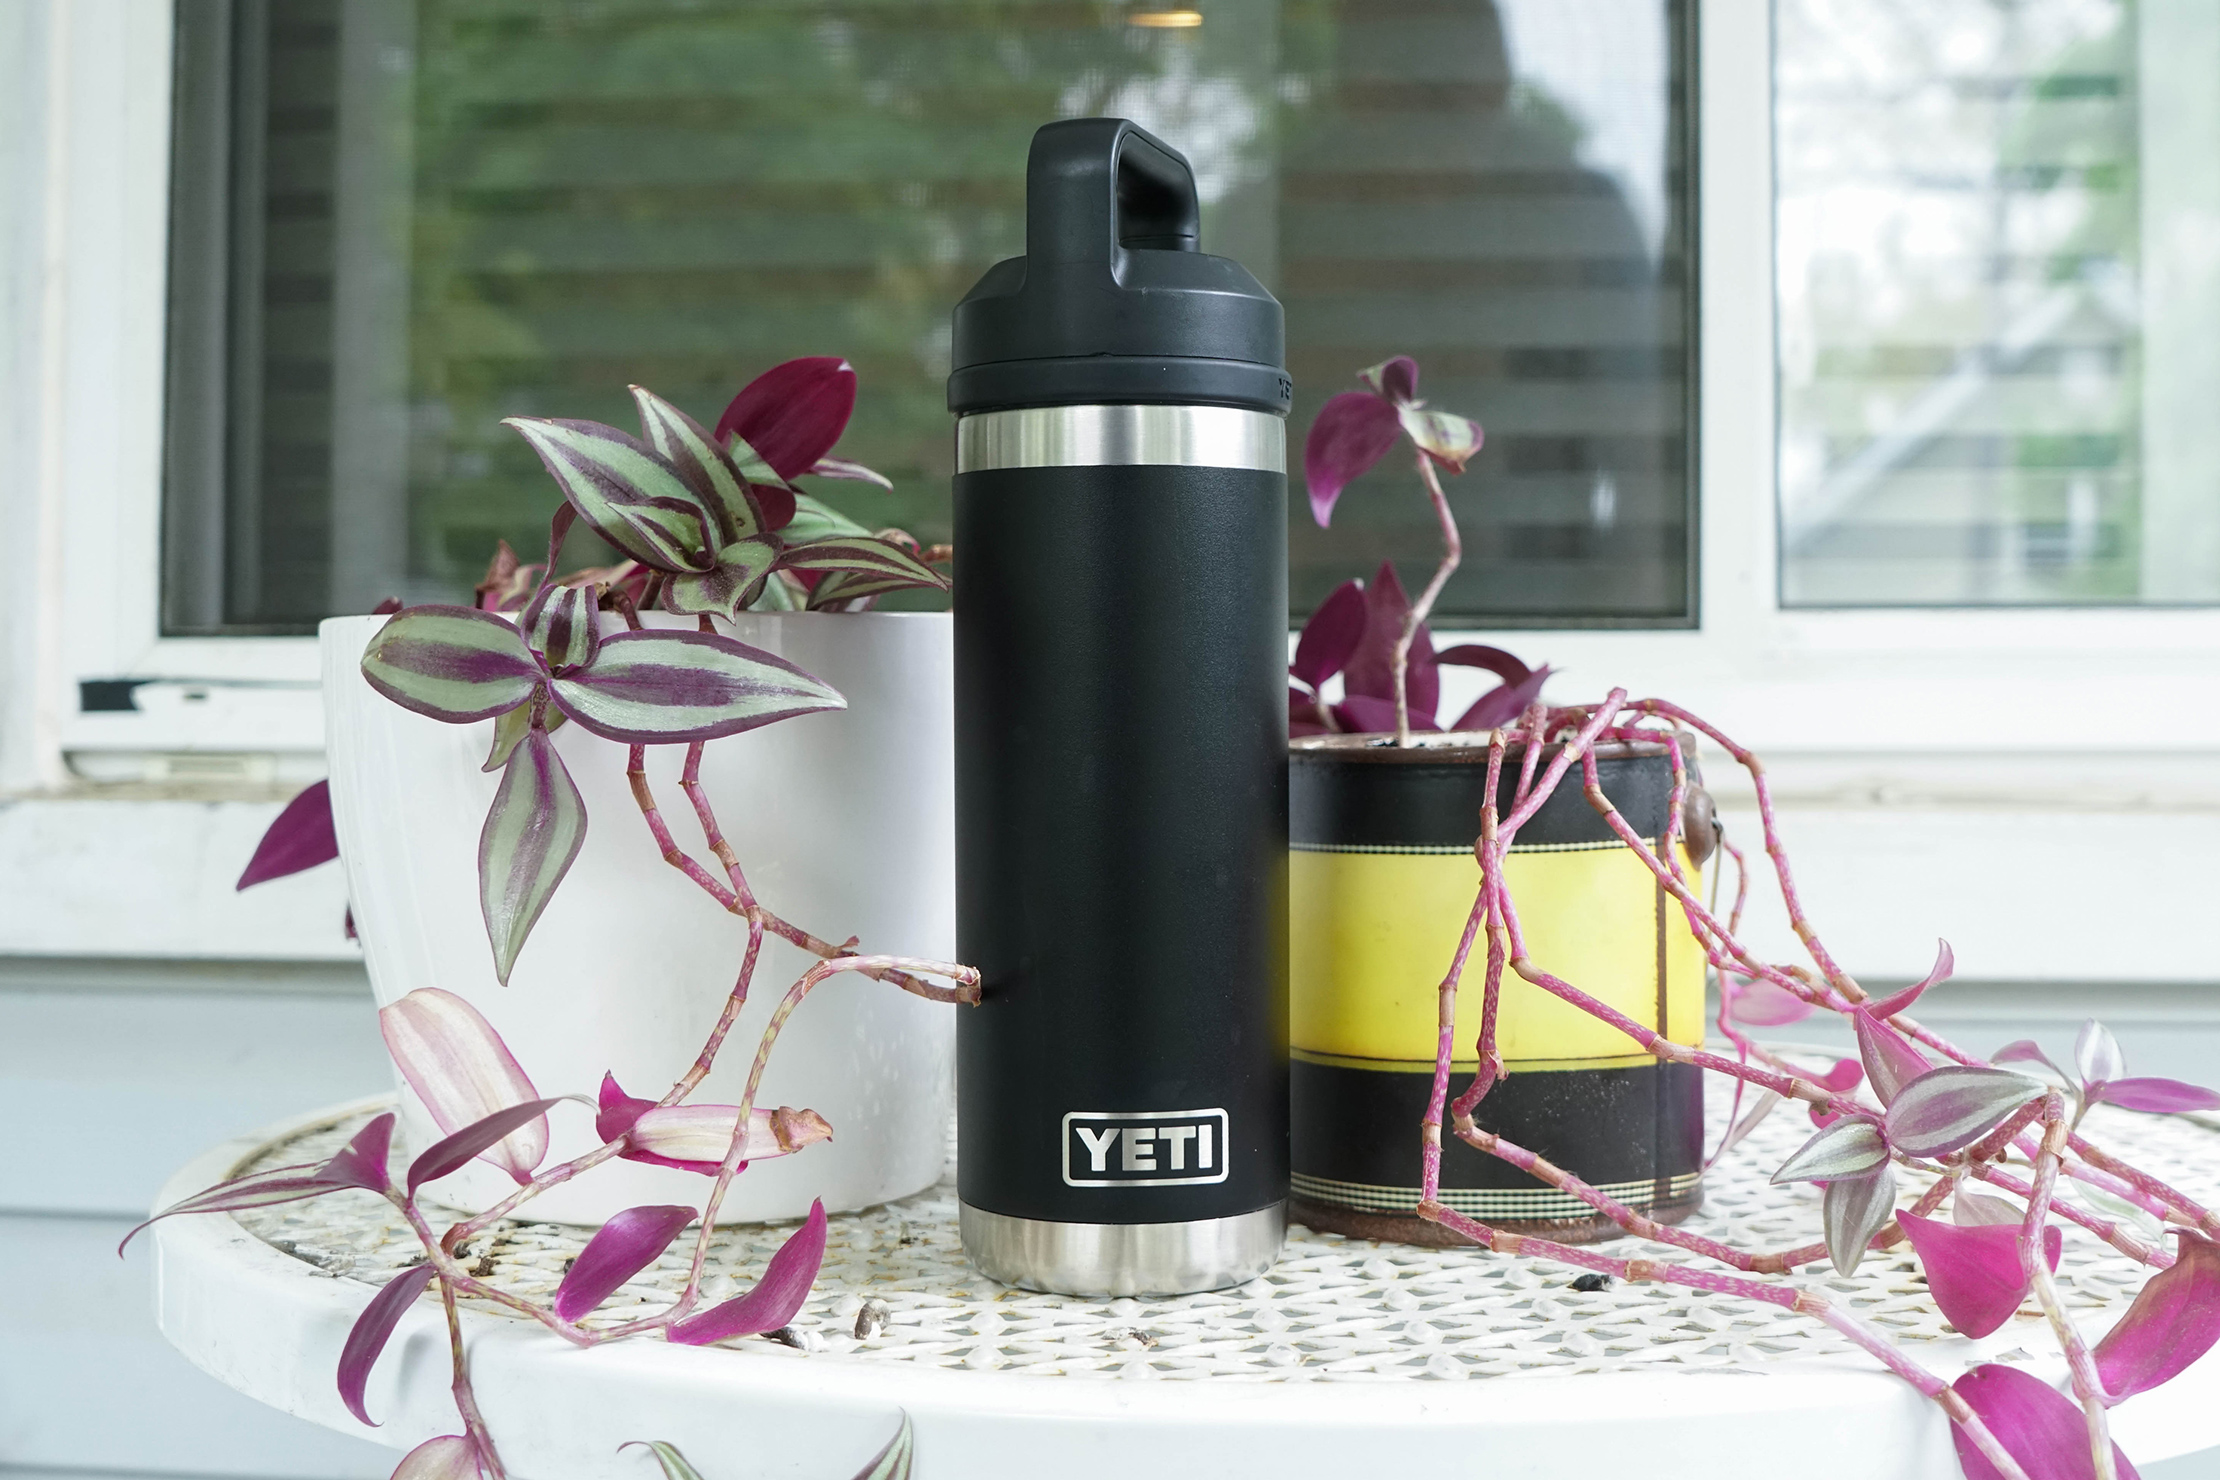 YETI Rambler 18oz Bottle On Table